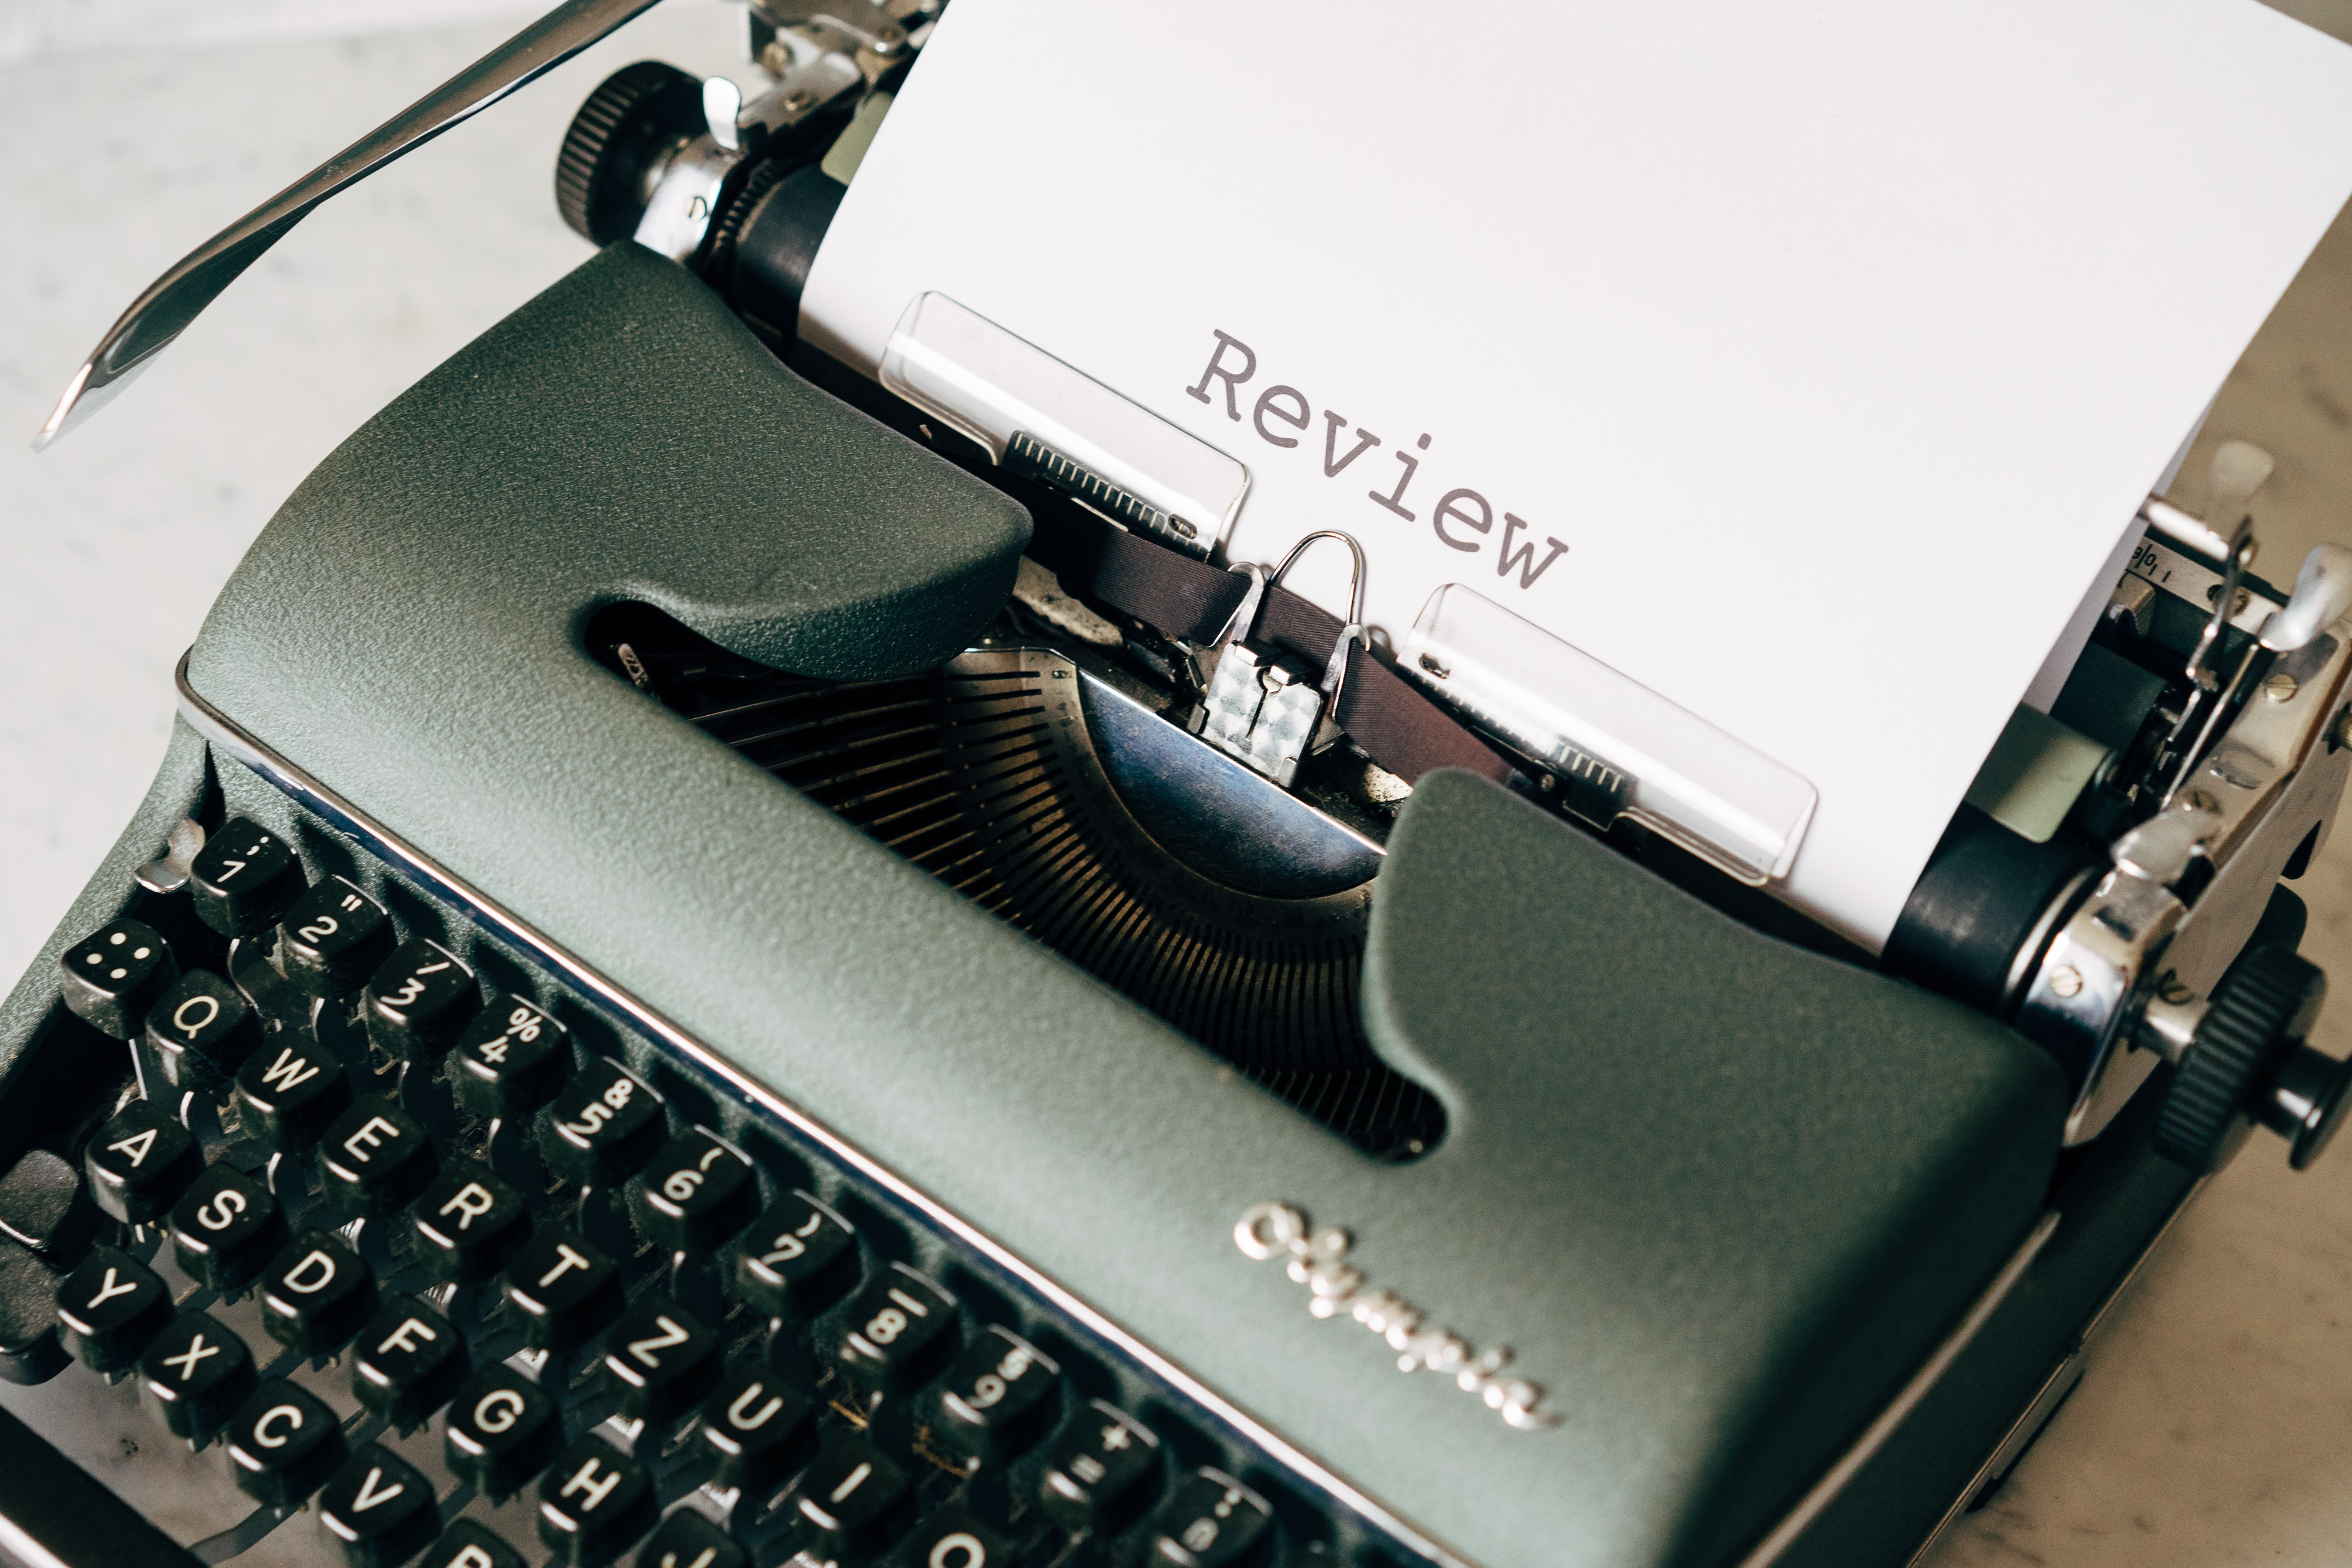 A green old-fashioned typewriter, with the word 'review' written out onto a page in large lettering.